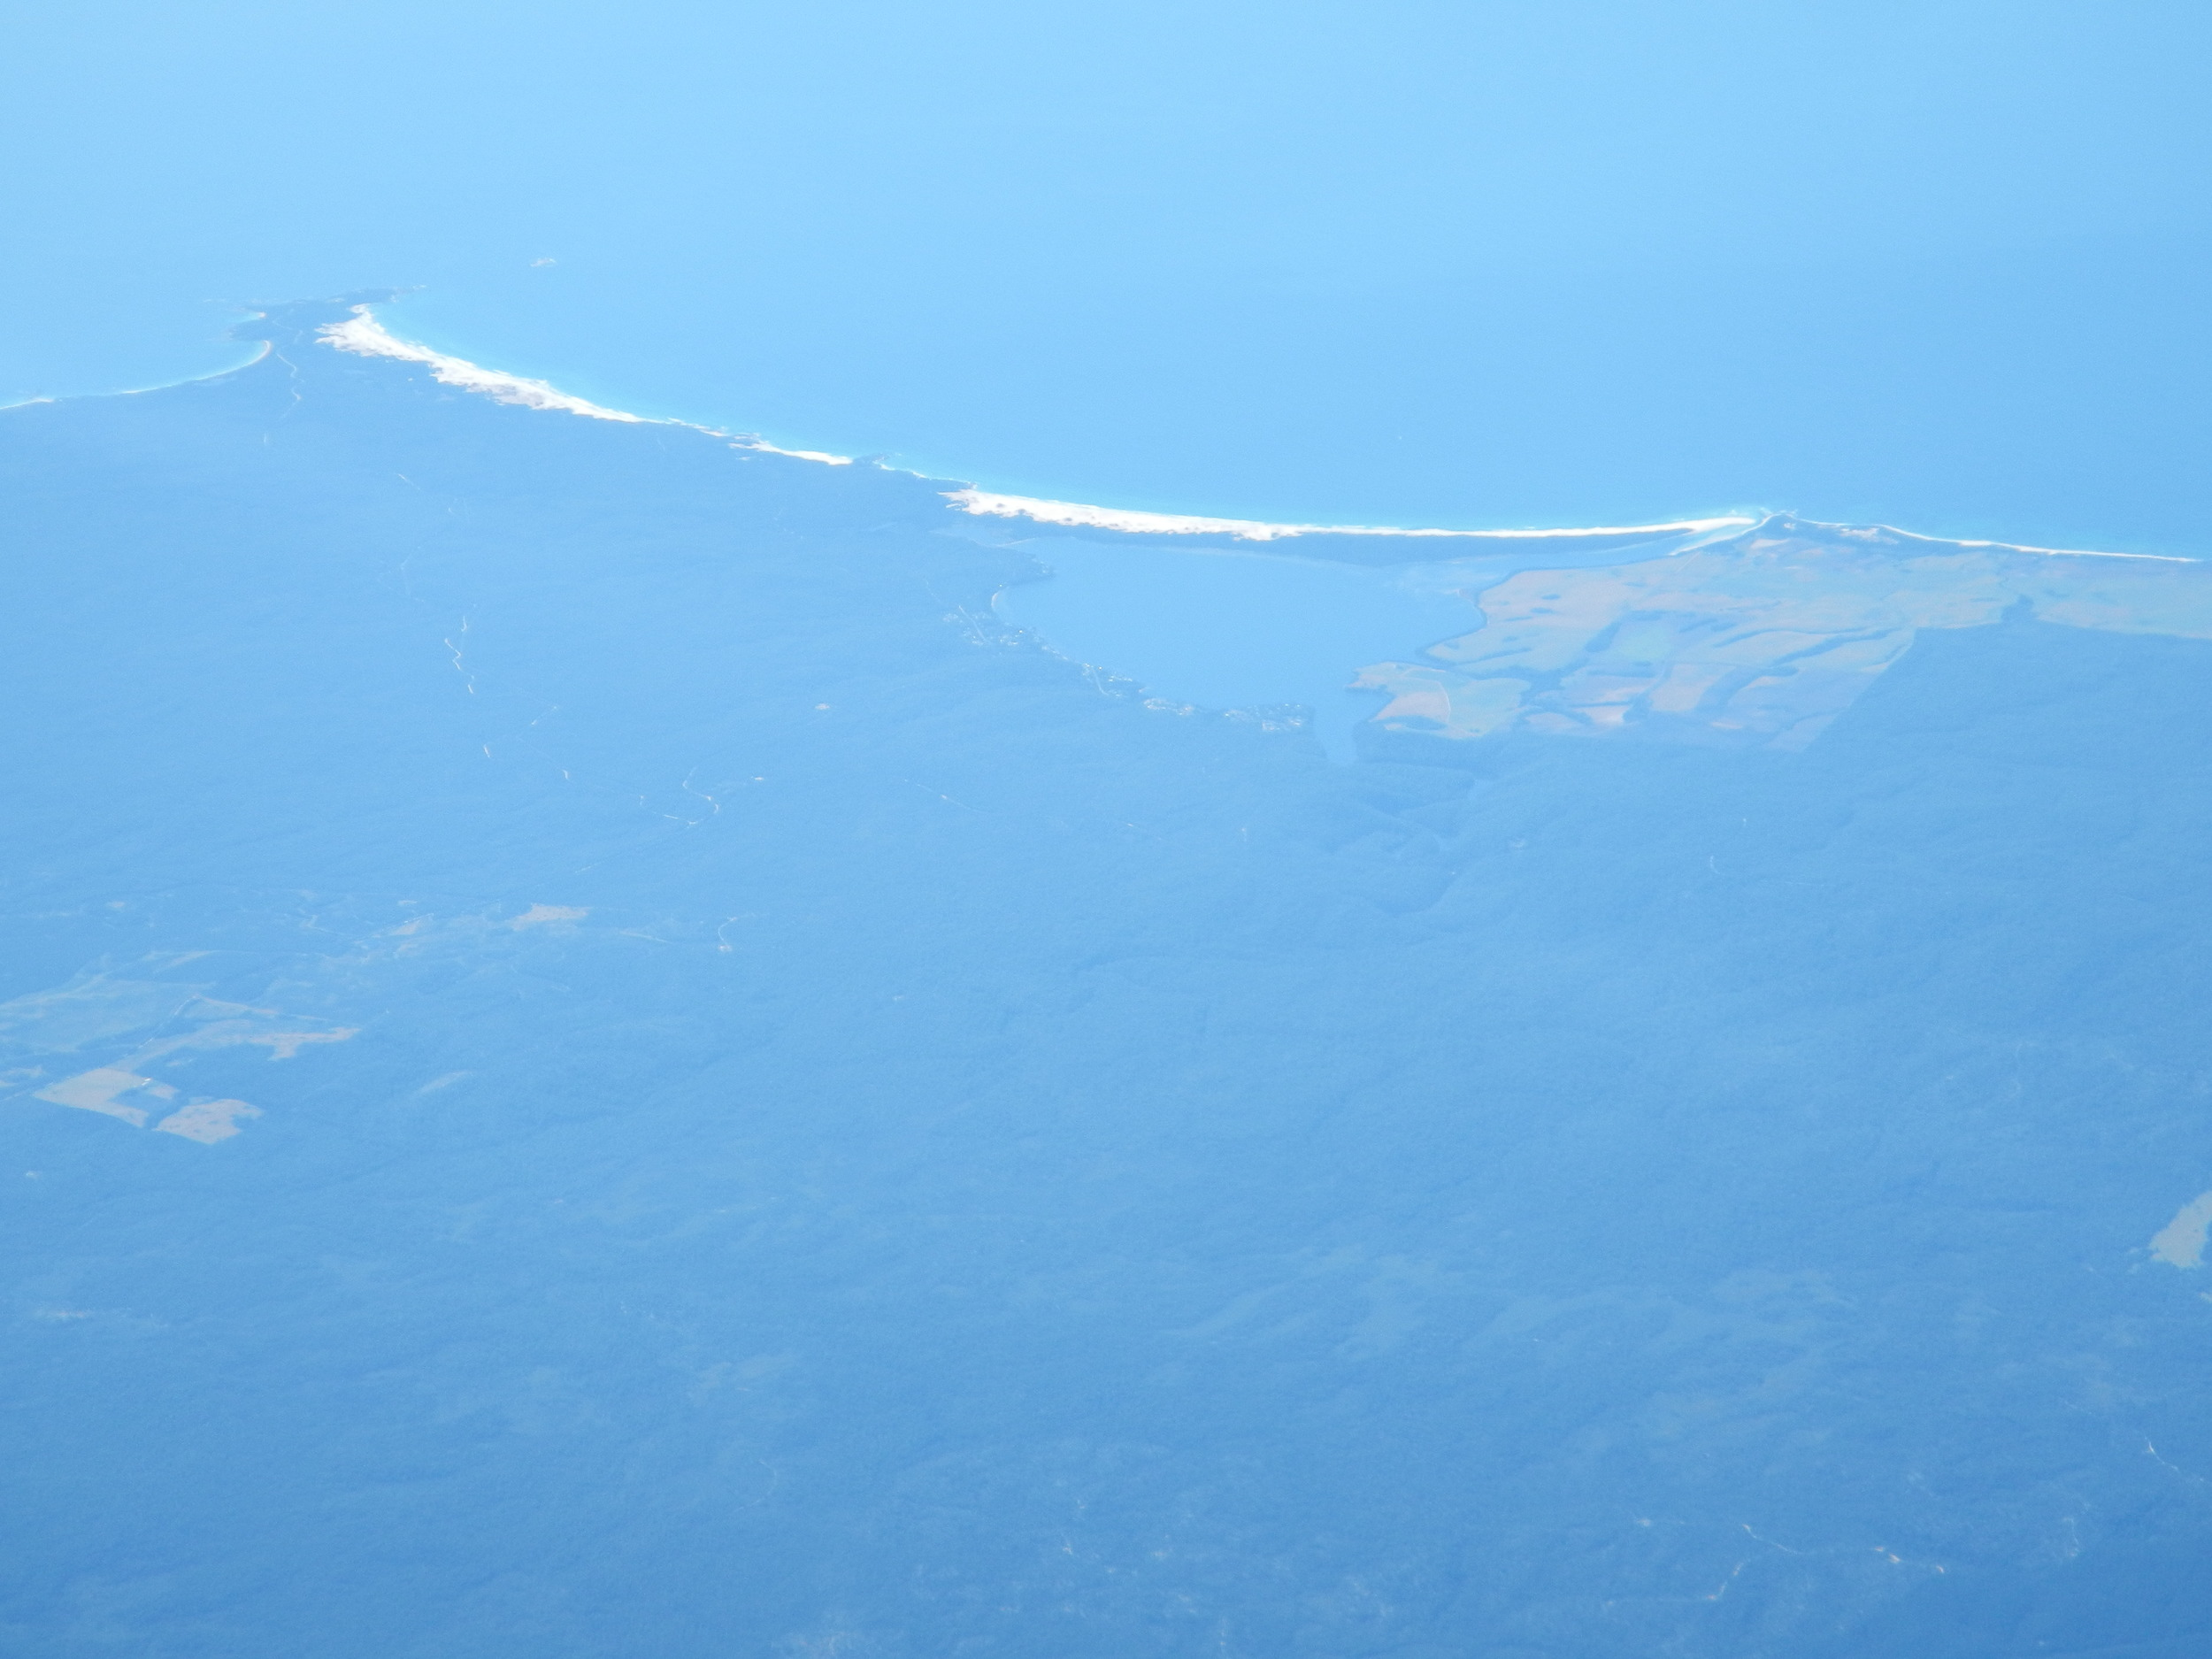 Anson's Bay from the air, 25 Mar 2012